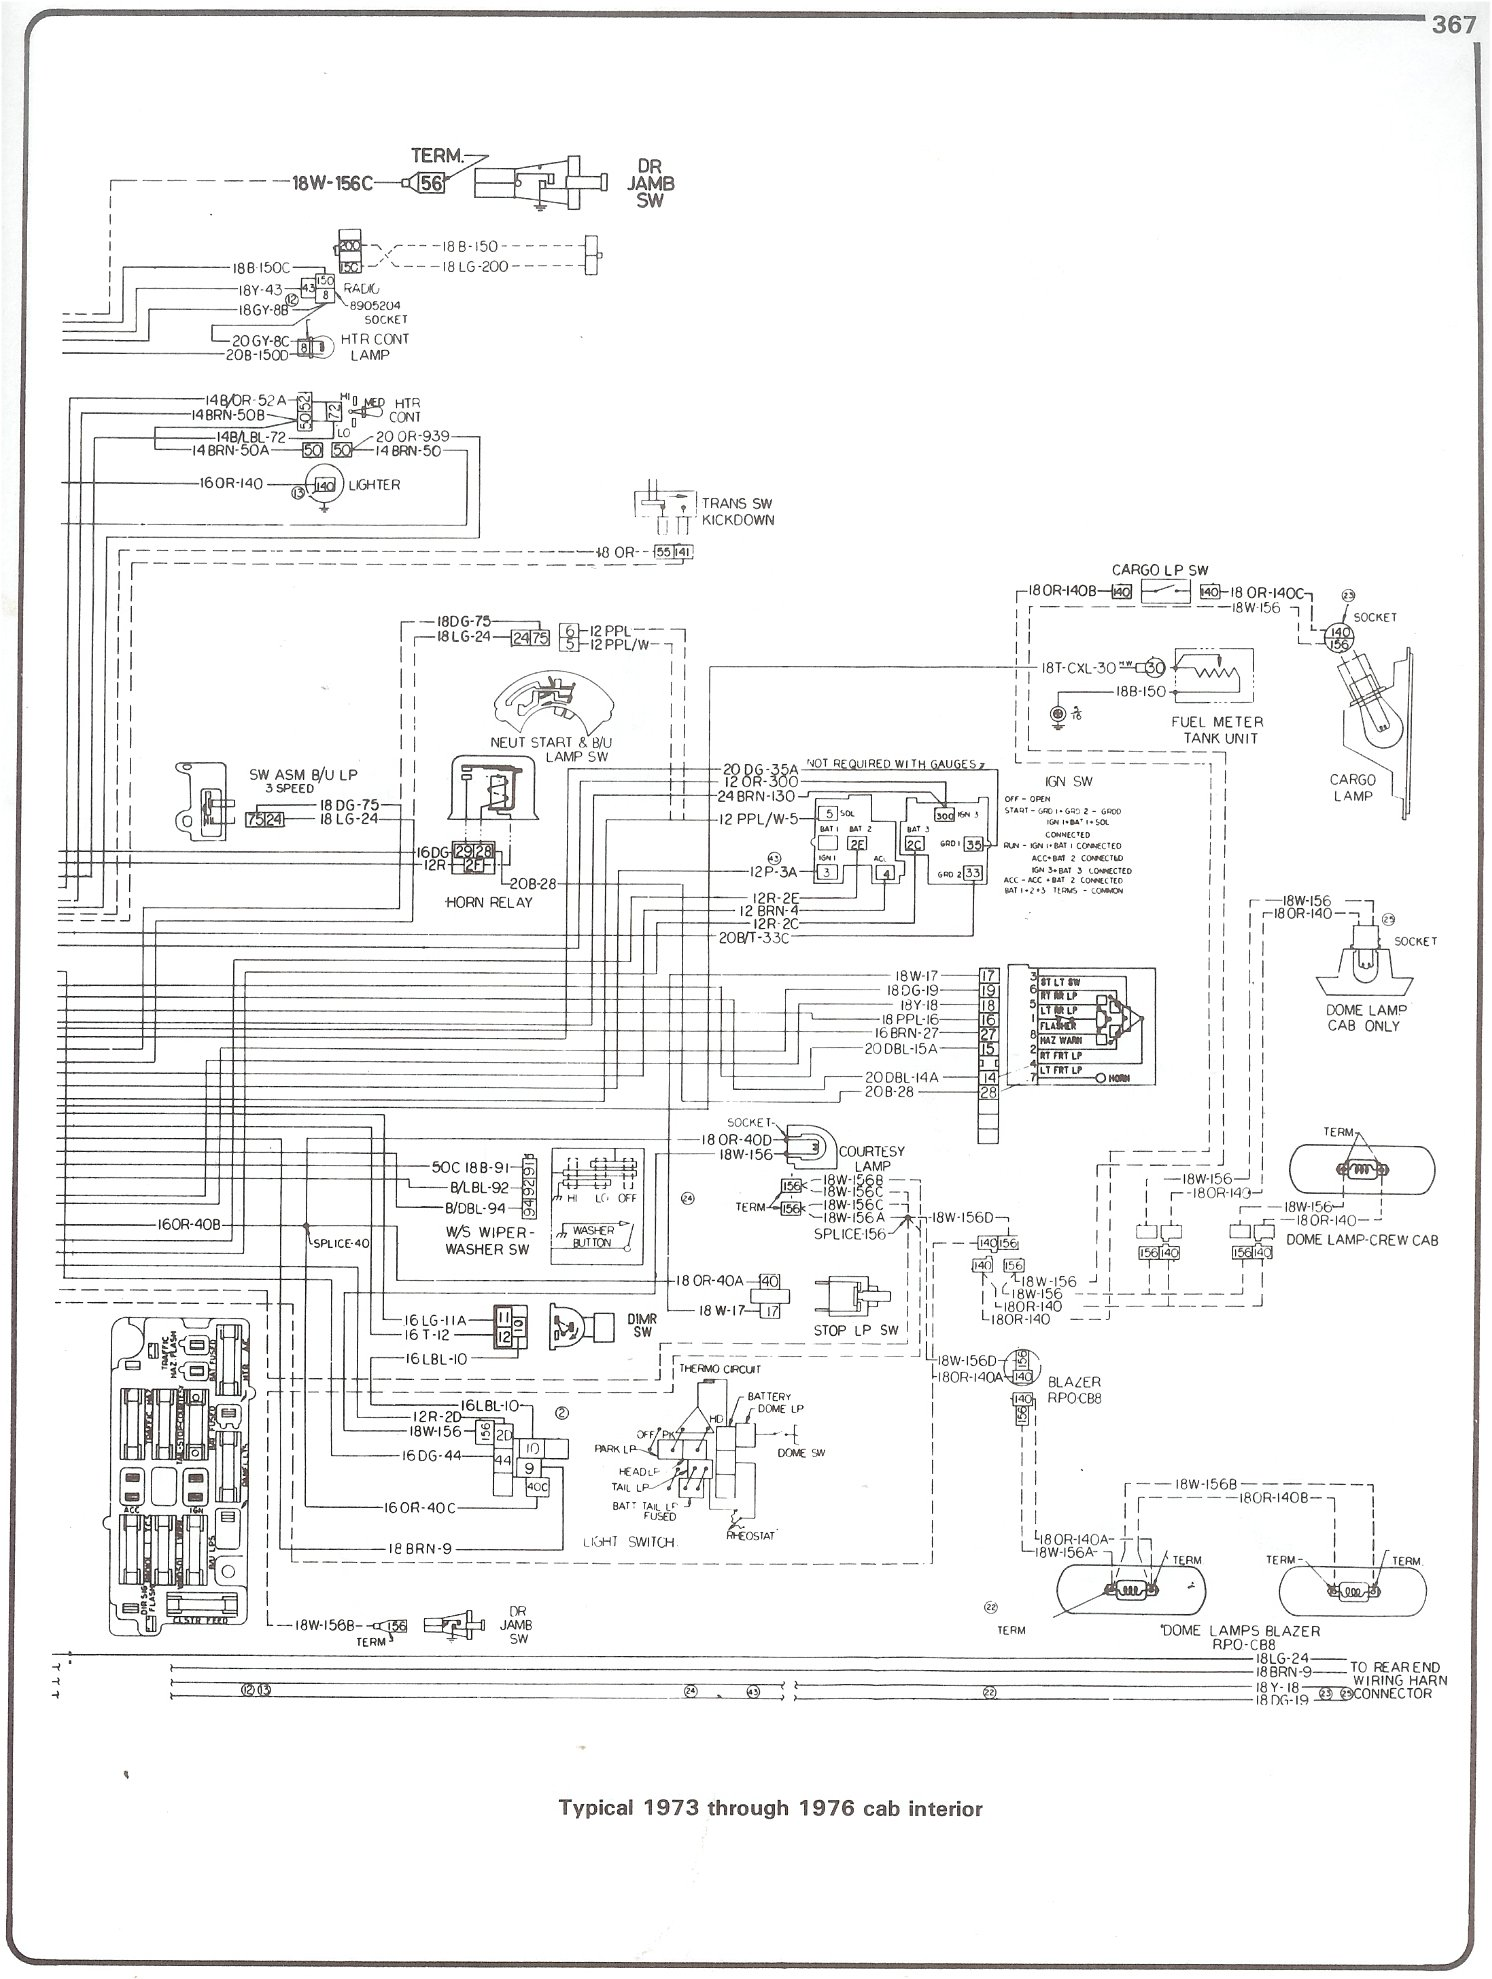 70 Hp 3 Cylinder Color Wiring Diagram Free Download Wiring Diagram